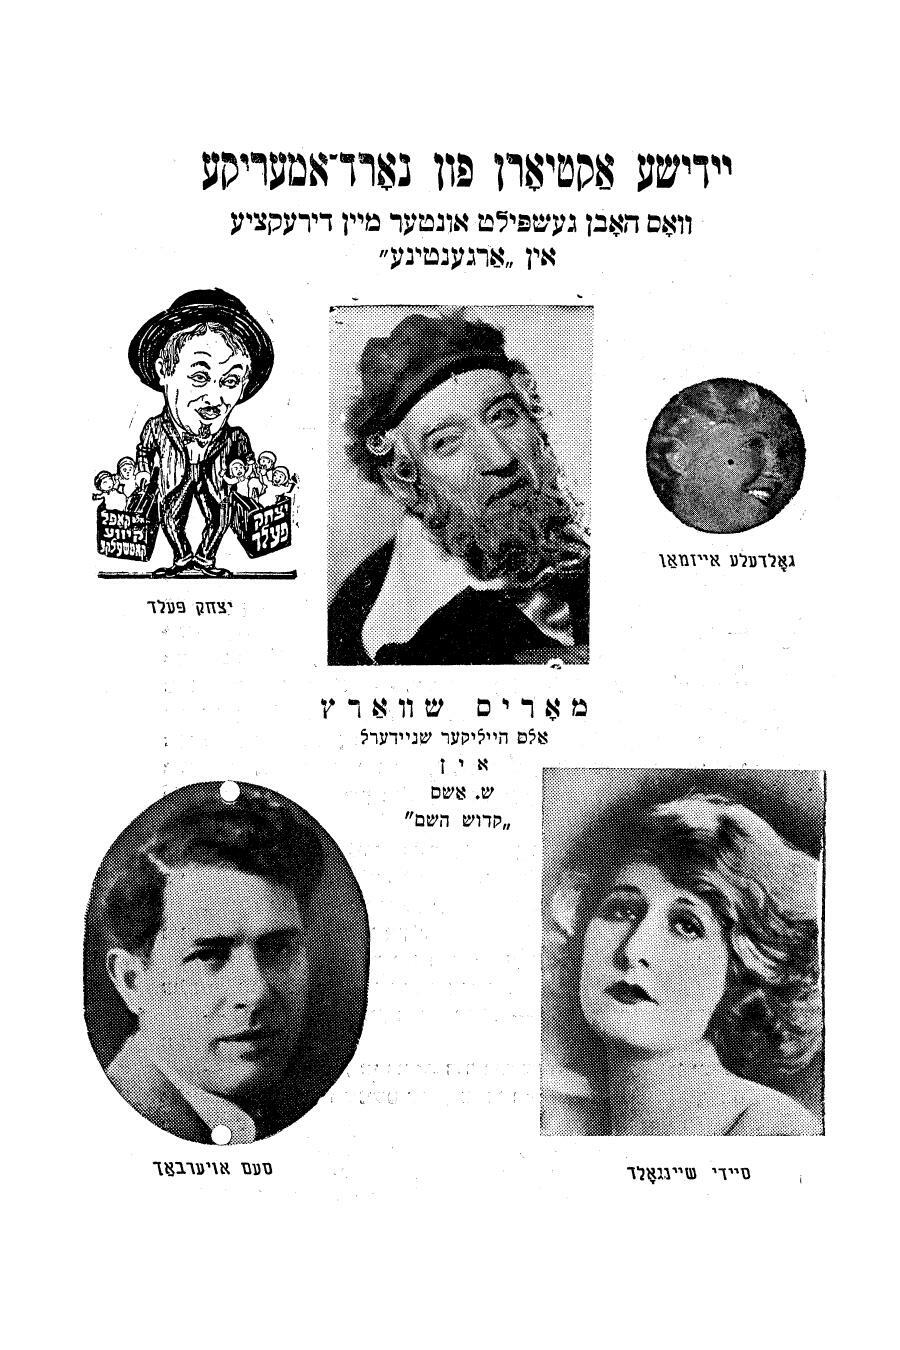 """<p>Photo spread: Yiddish actors from North America, in Adolf Mide, <em>Epizodn fun yidishn teater (Episodios del teatro judío)</em>, vol. <span class=""""numbers"""">1</span>, <span class=""""numbers"""">4</span><sup class=""""ordinal"""">th</sup> edition (Buenos Aires: <span class=""""numbers"""">1957</span>), p.&nbsp;<span class=""""numbers"""">43</span>.&nbsp;</p>"""